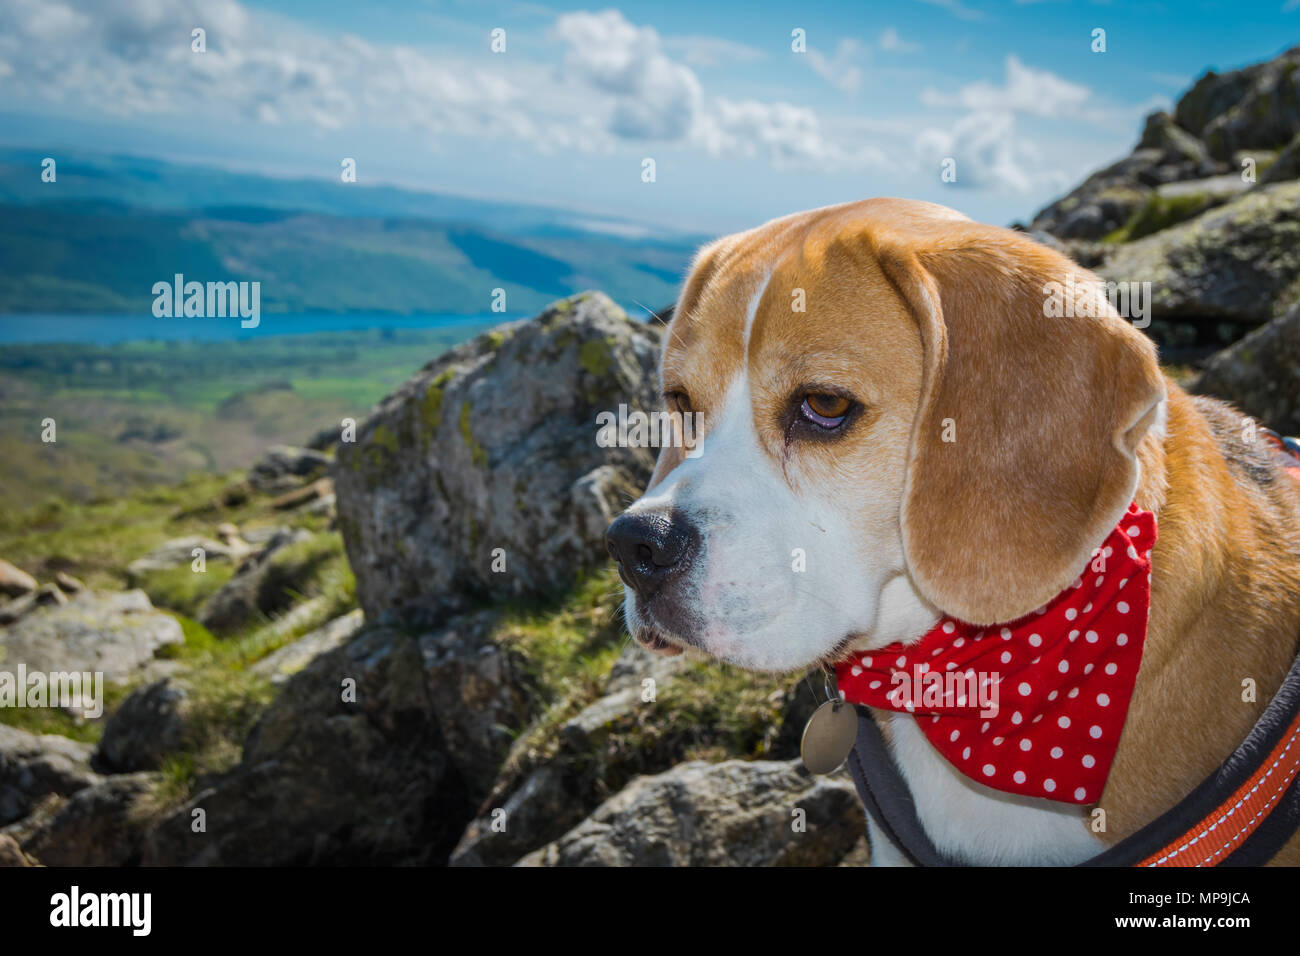 A beagle looks out across the Cumbrian Landscape after Climbing The Old Man Of Coniston in The Lake District, United Kingdom - Stock Image